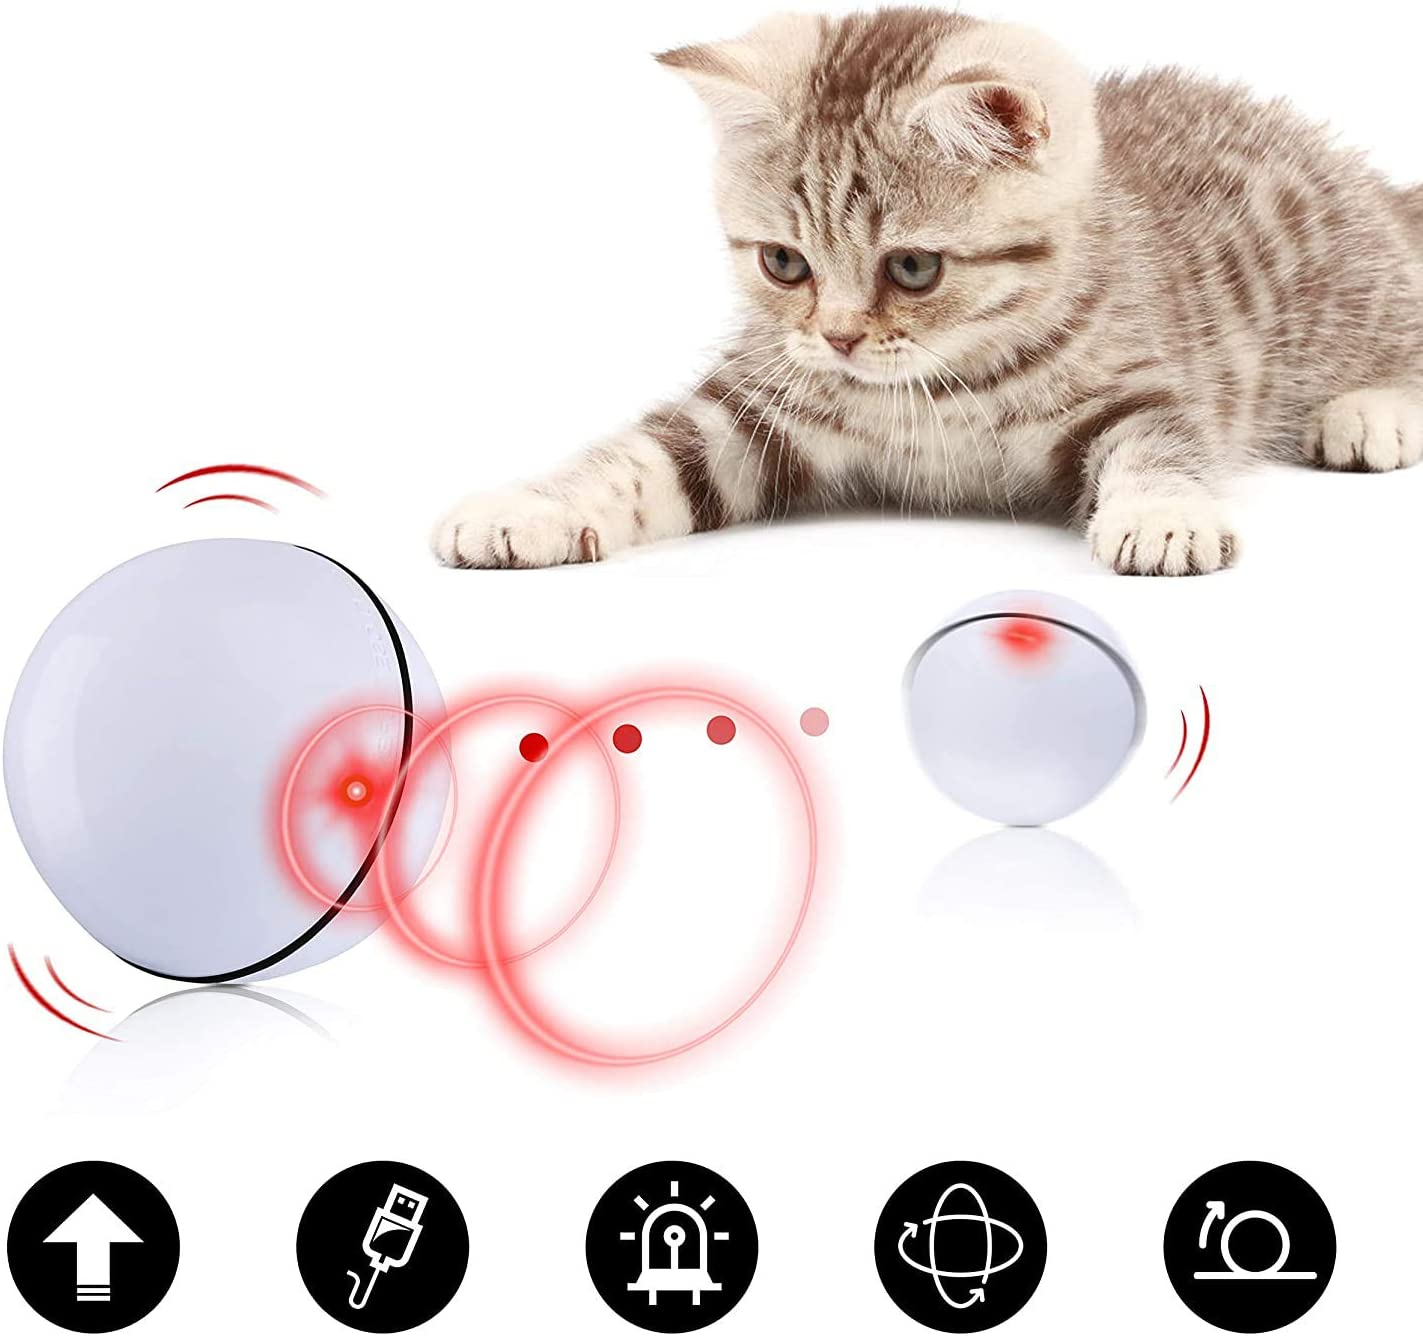 Automatic/Rolling Smart Interactive Pet Toy Ball Fun Gift for Kittens Kitty Doggies Puppies with RGB LED Lights Silicone Waterproof Blinkbrione Cats and Dogs Toys Wicked Balls USB Rechargeable